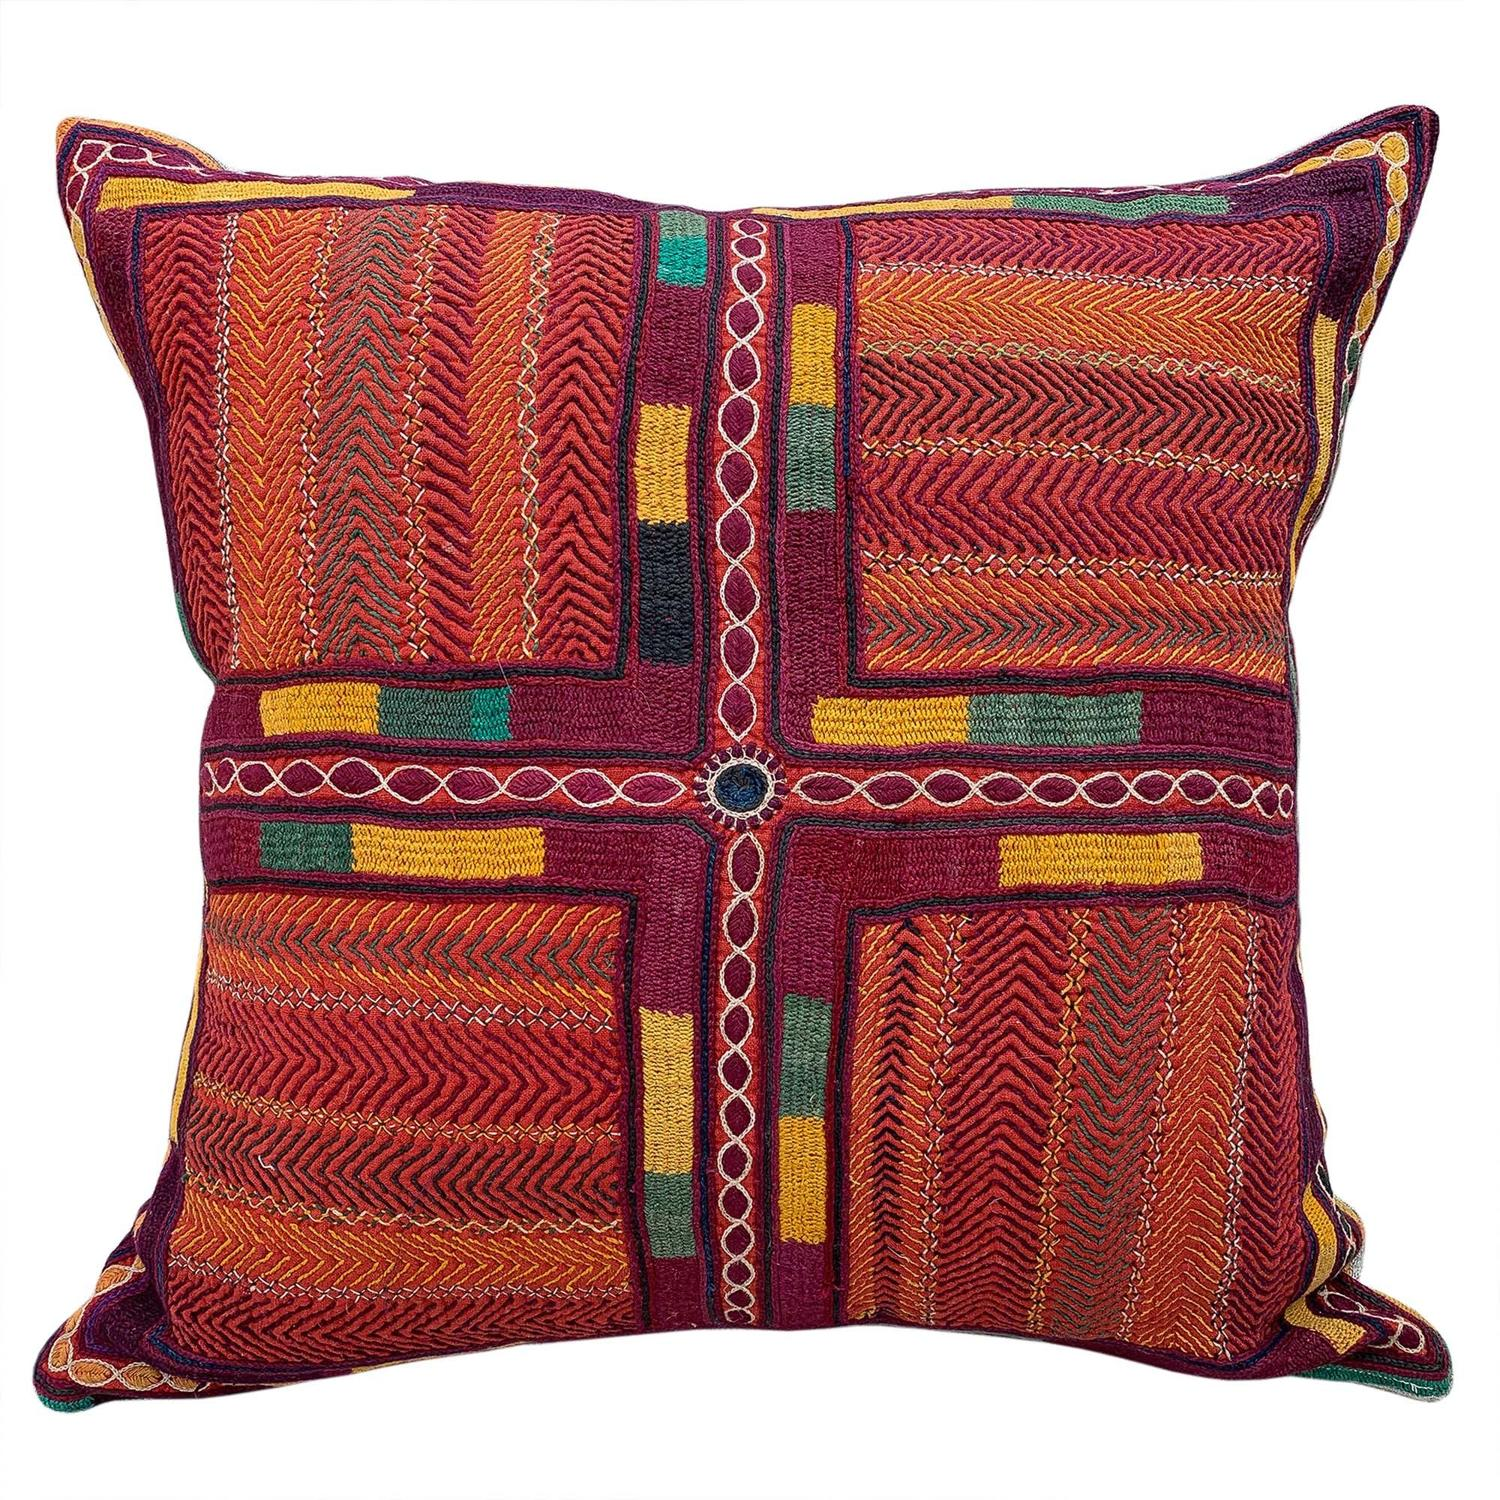 Large Banjara kalchi cushion